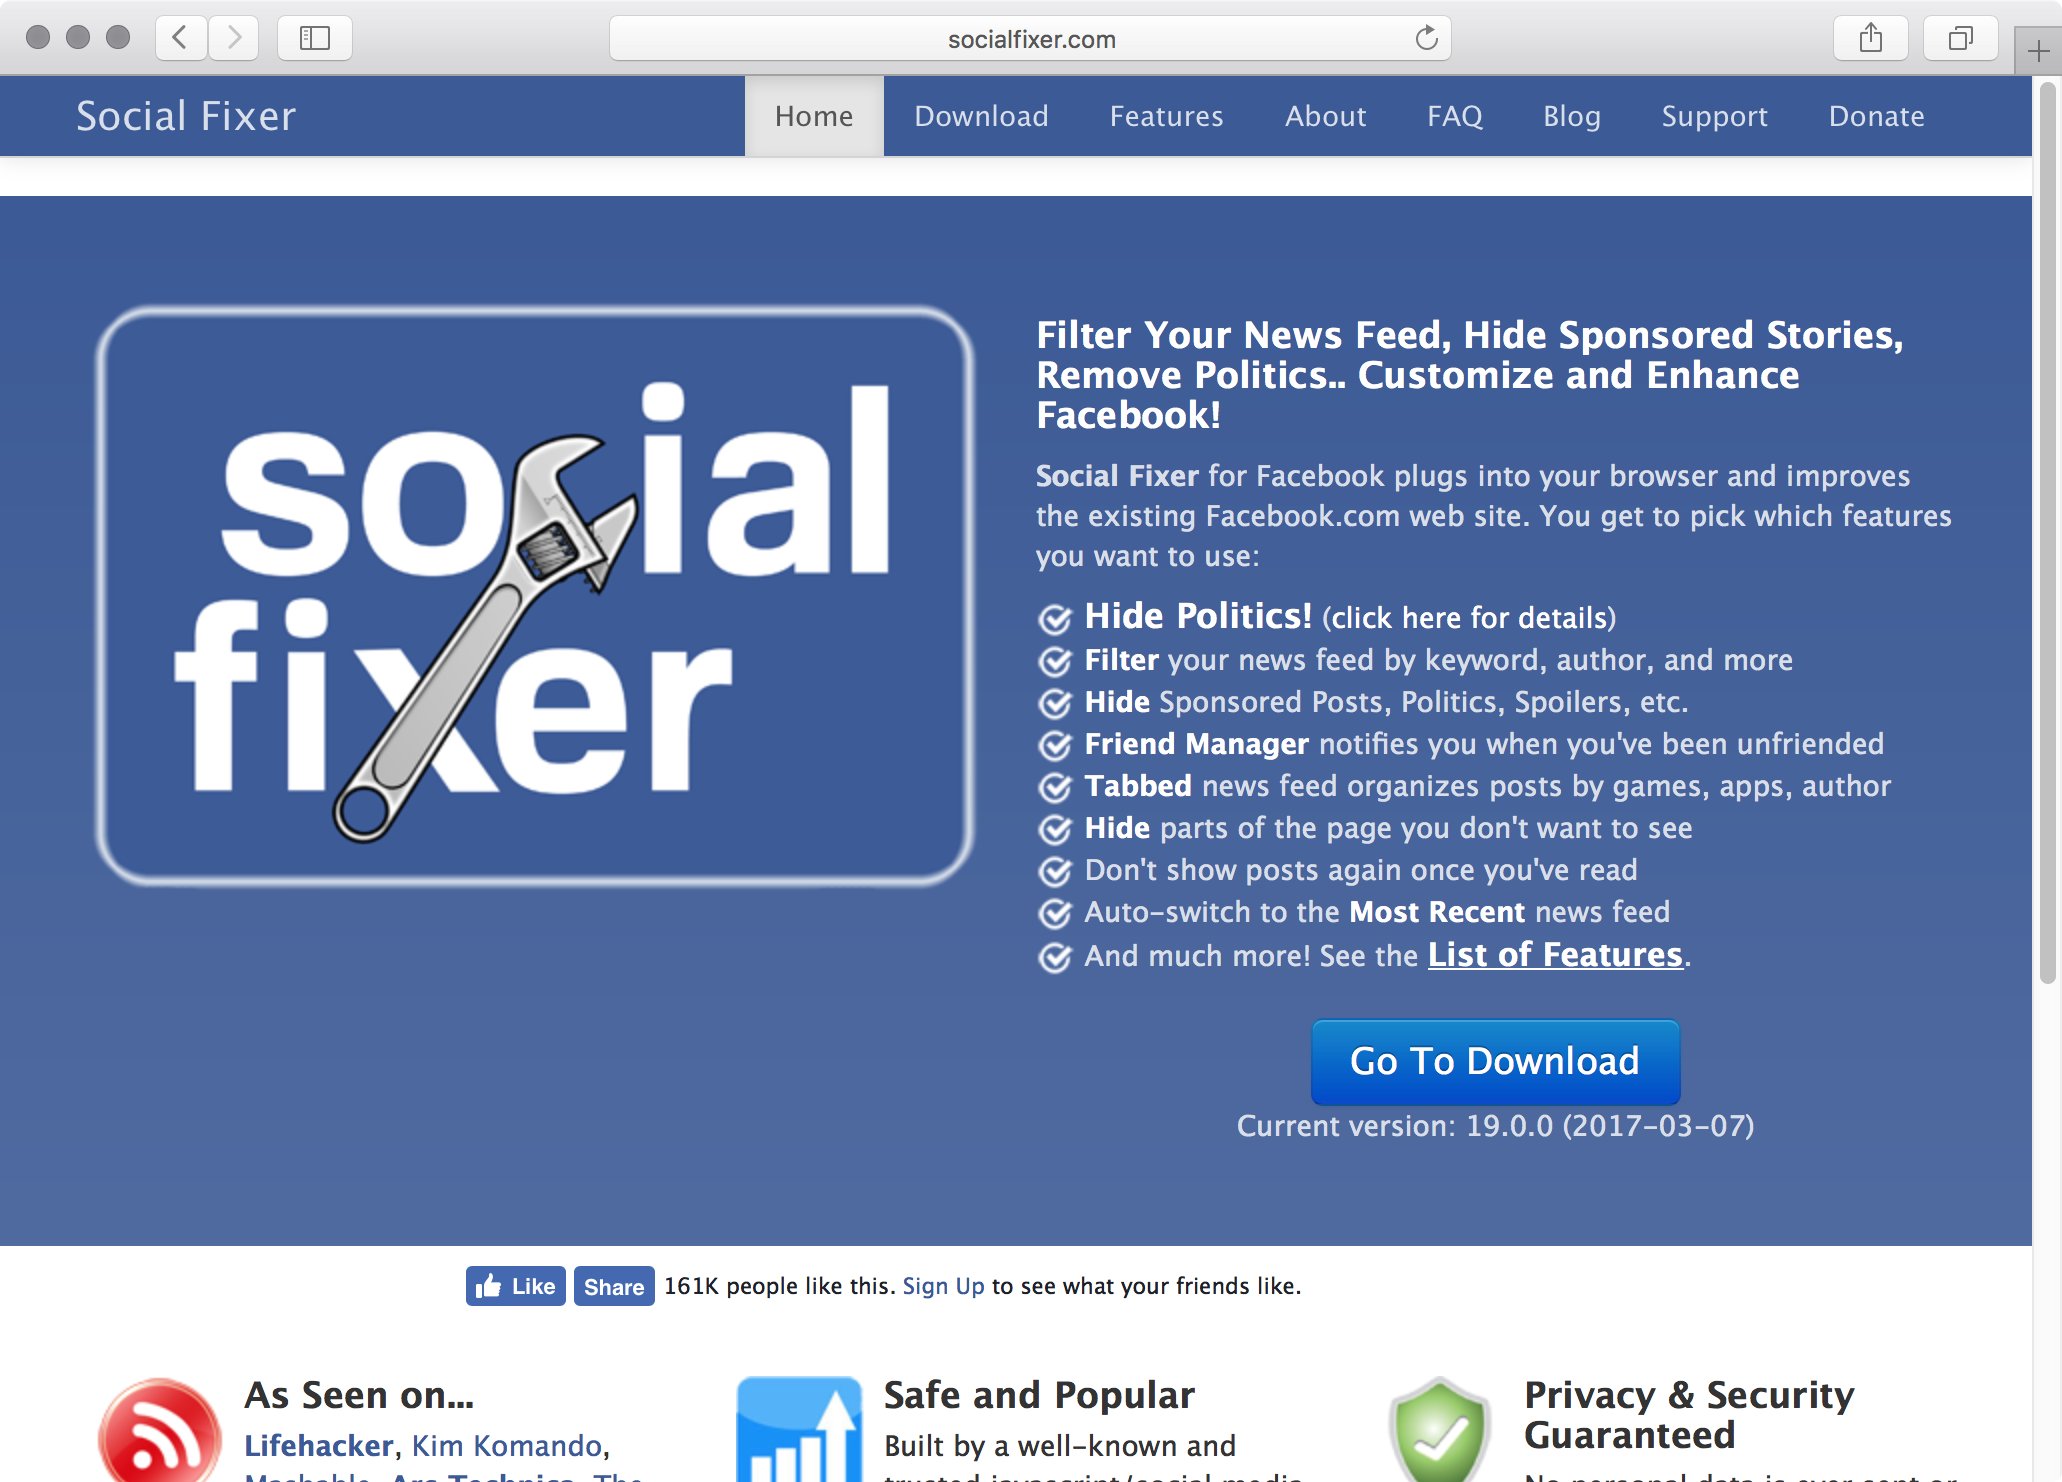 Social Fixer for Facebook plugs into your browser and improves the existing Facebook.com web site